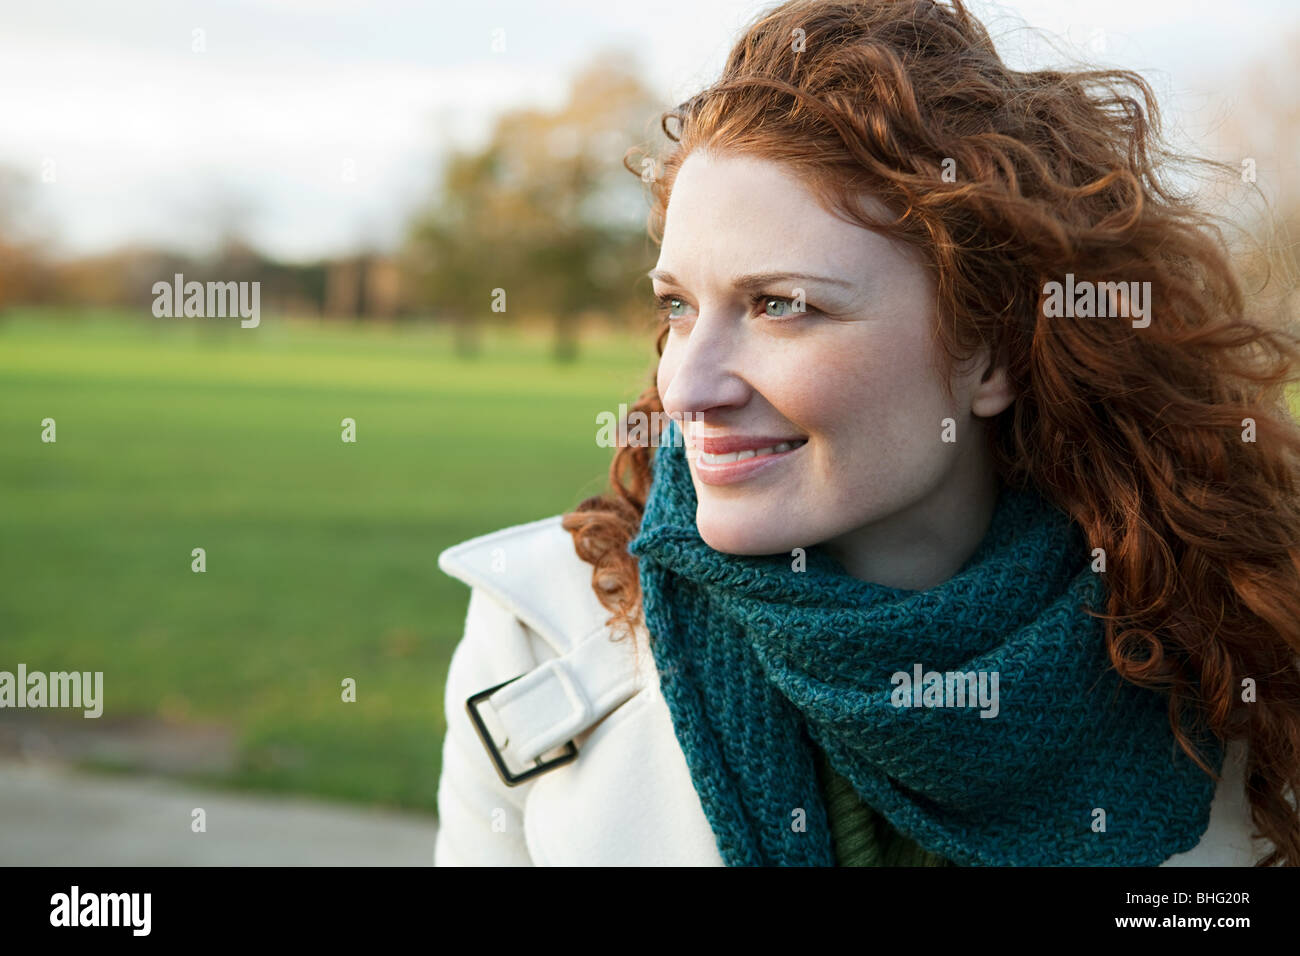 Portrait of a smiling red haired woman Photo Stock